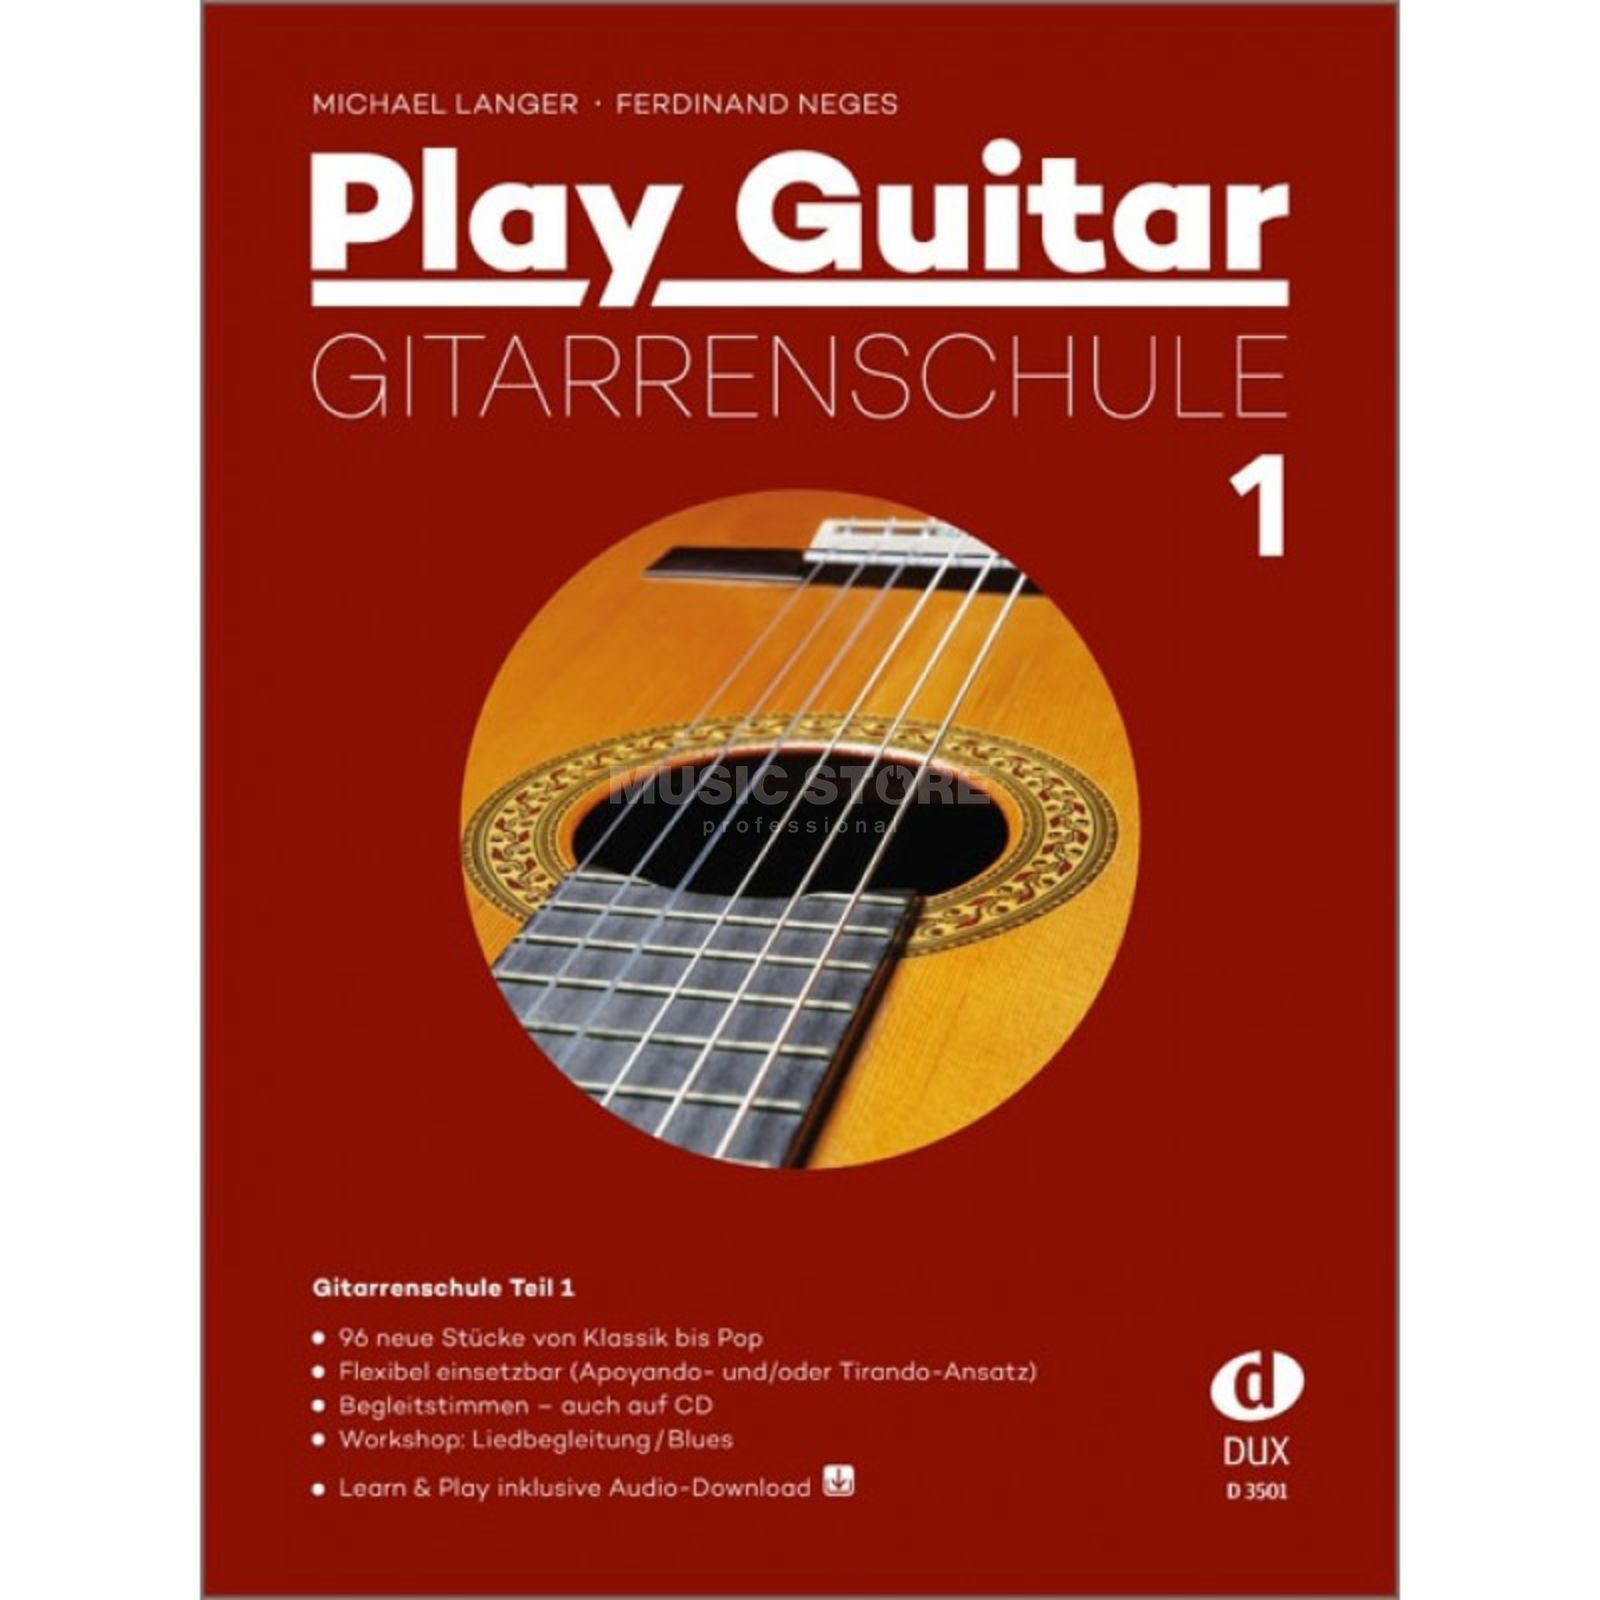 Edition Dux Play Guitar Gitarrenschule 1 Product Image